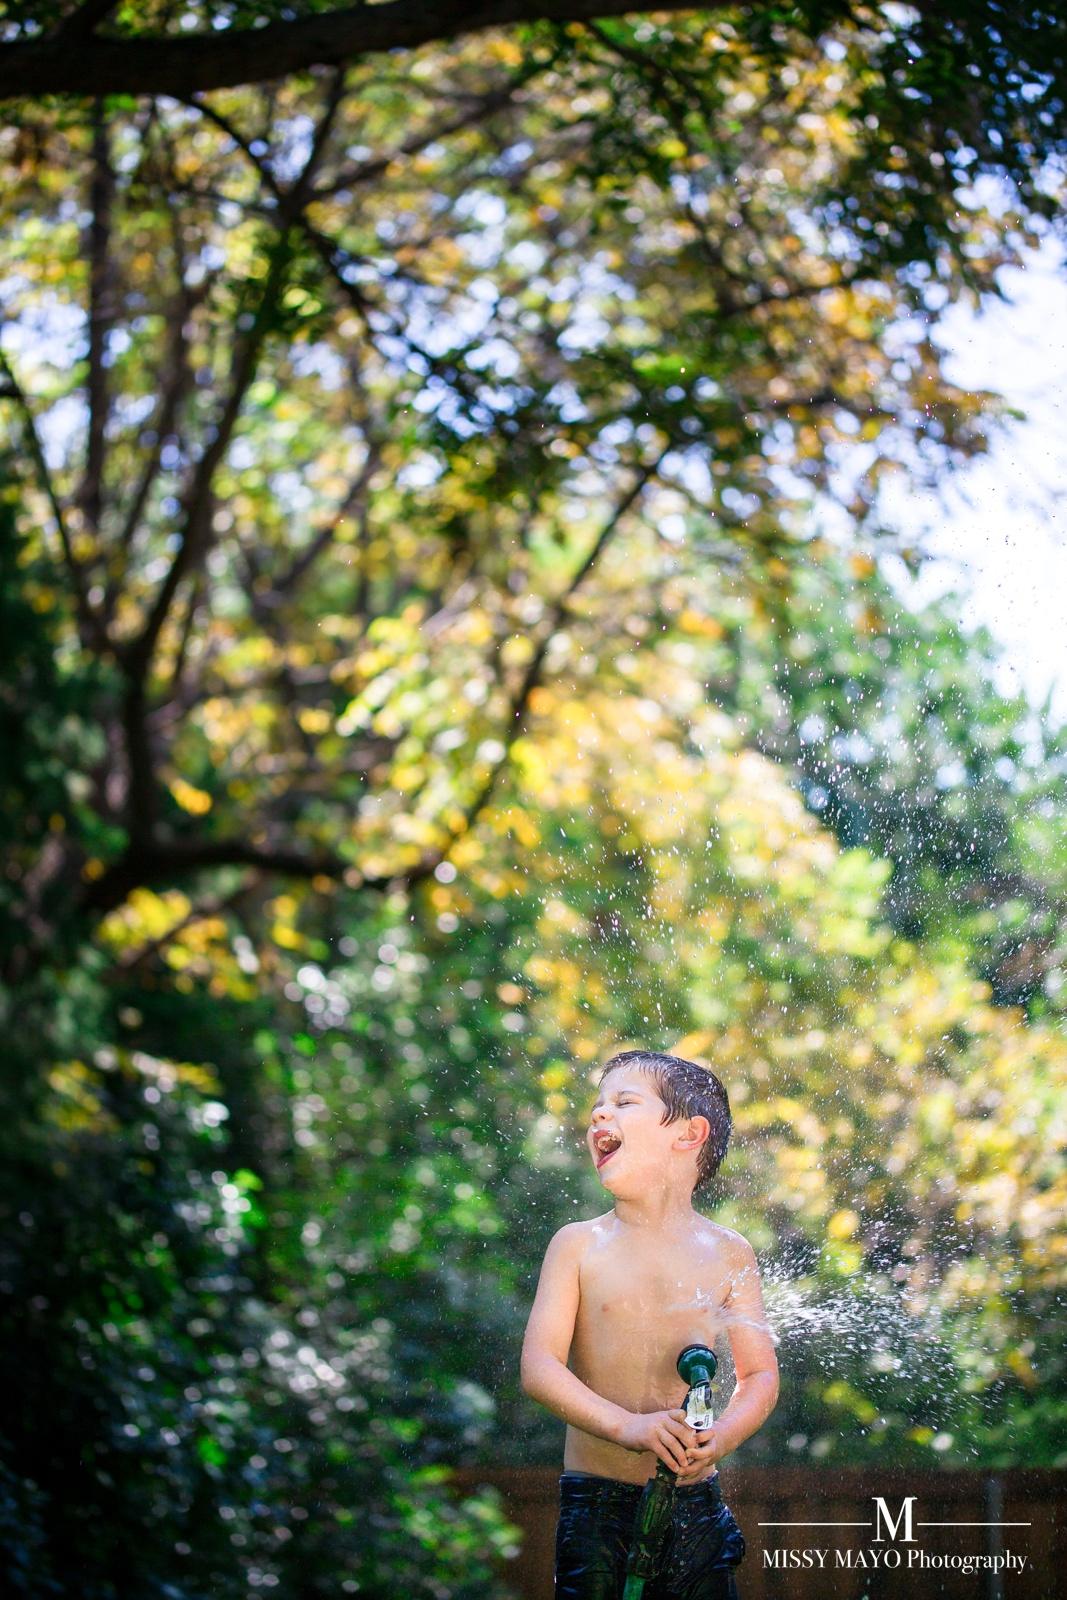 young boy spraying garden hose water on himself by Missy Mayo